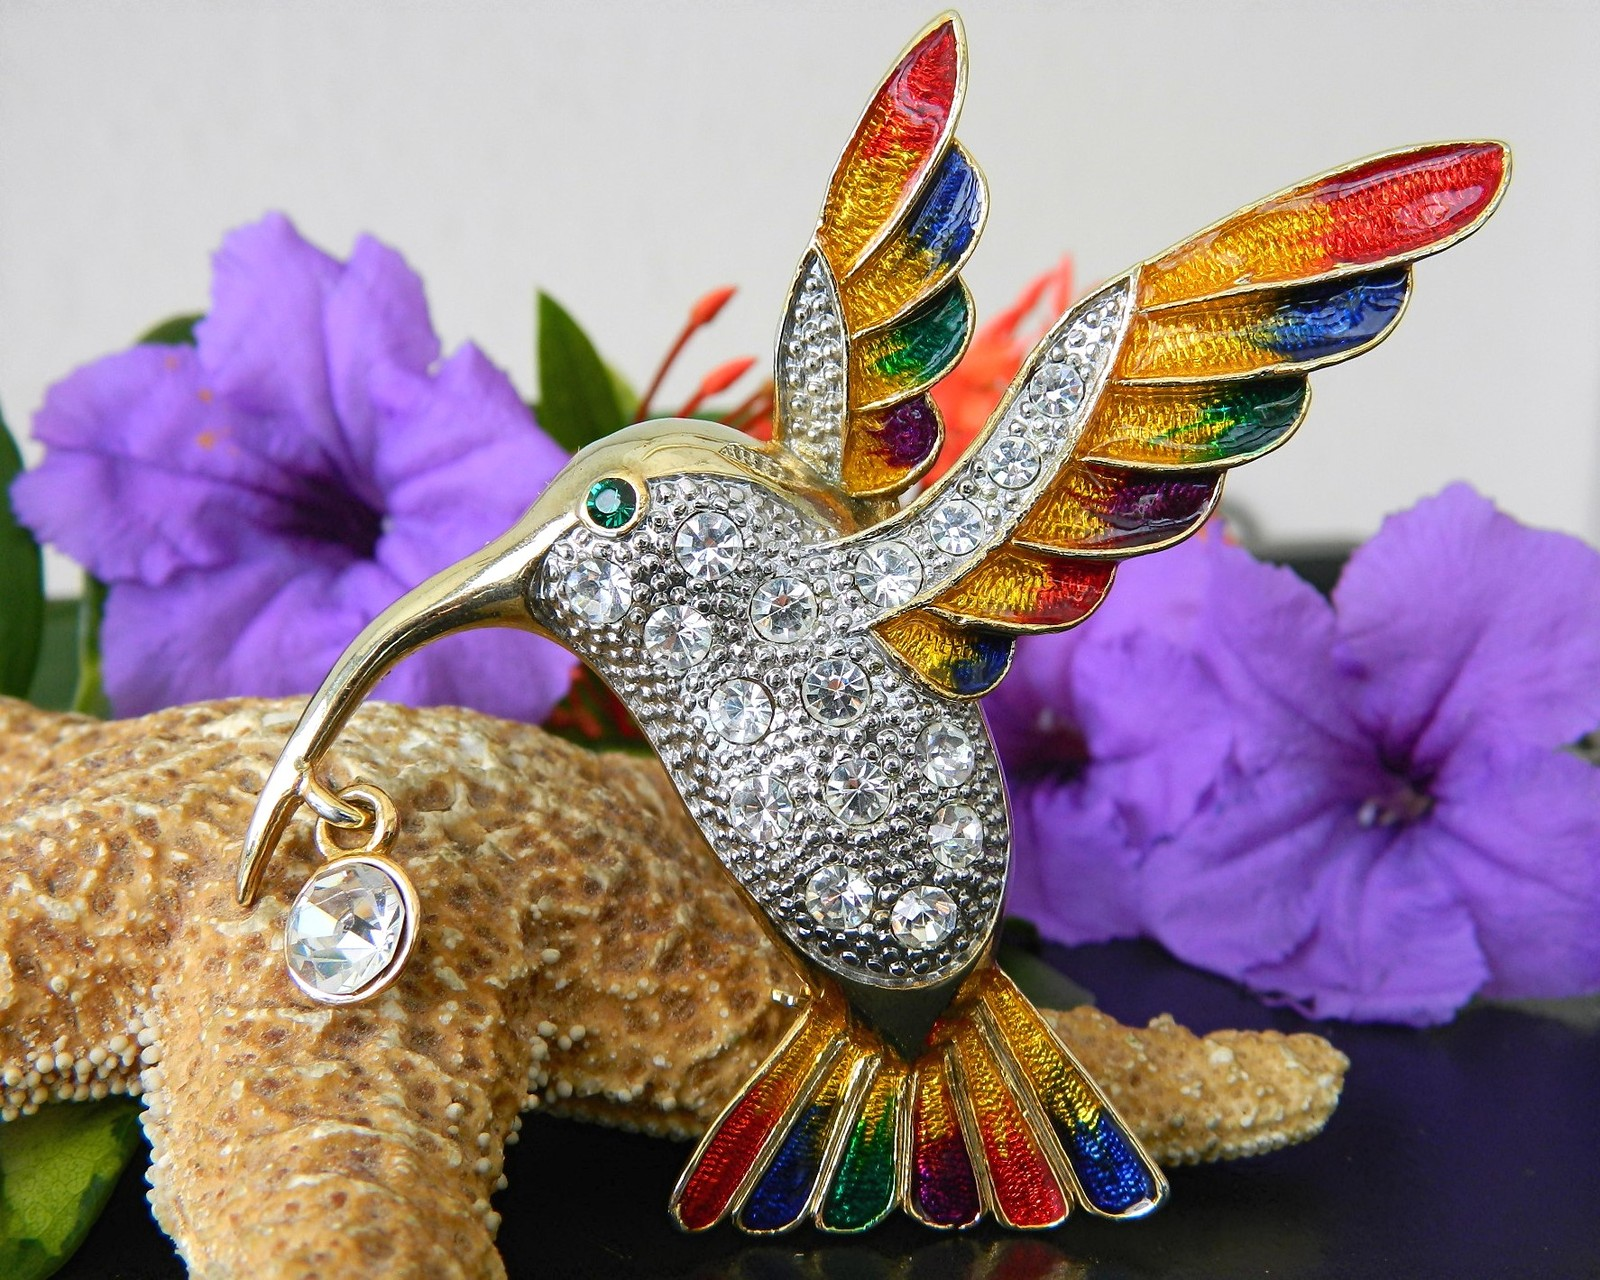 Hummingbird bird brooch pin rhinestones enamel colorful large goldtone